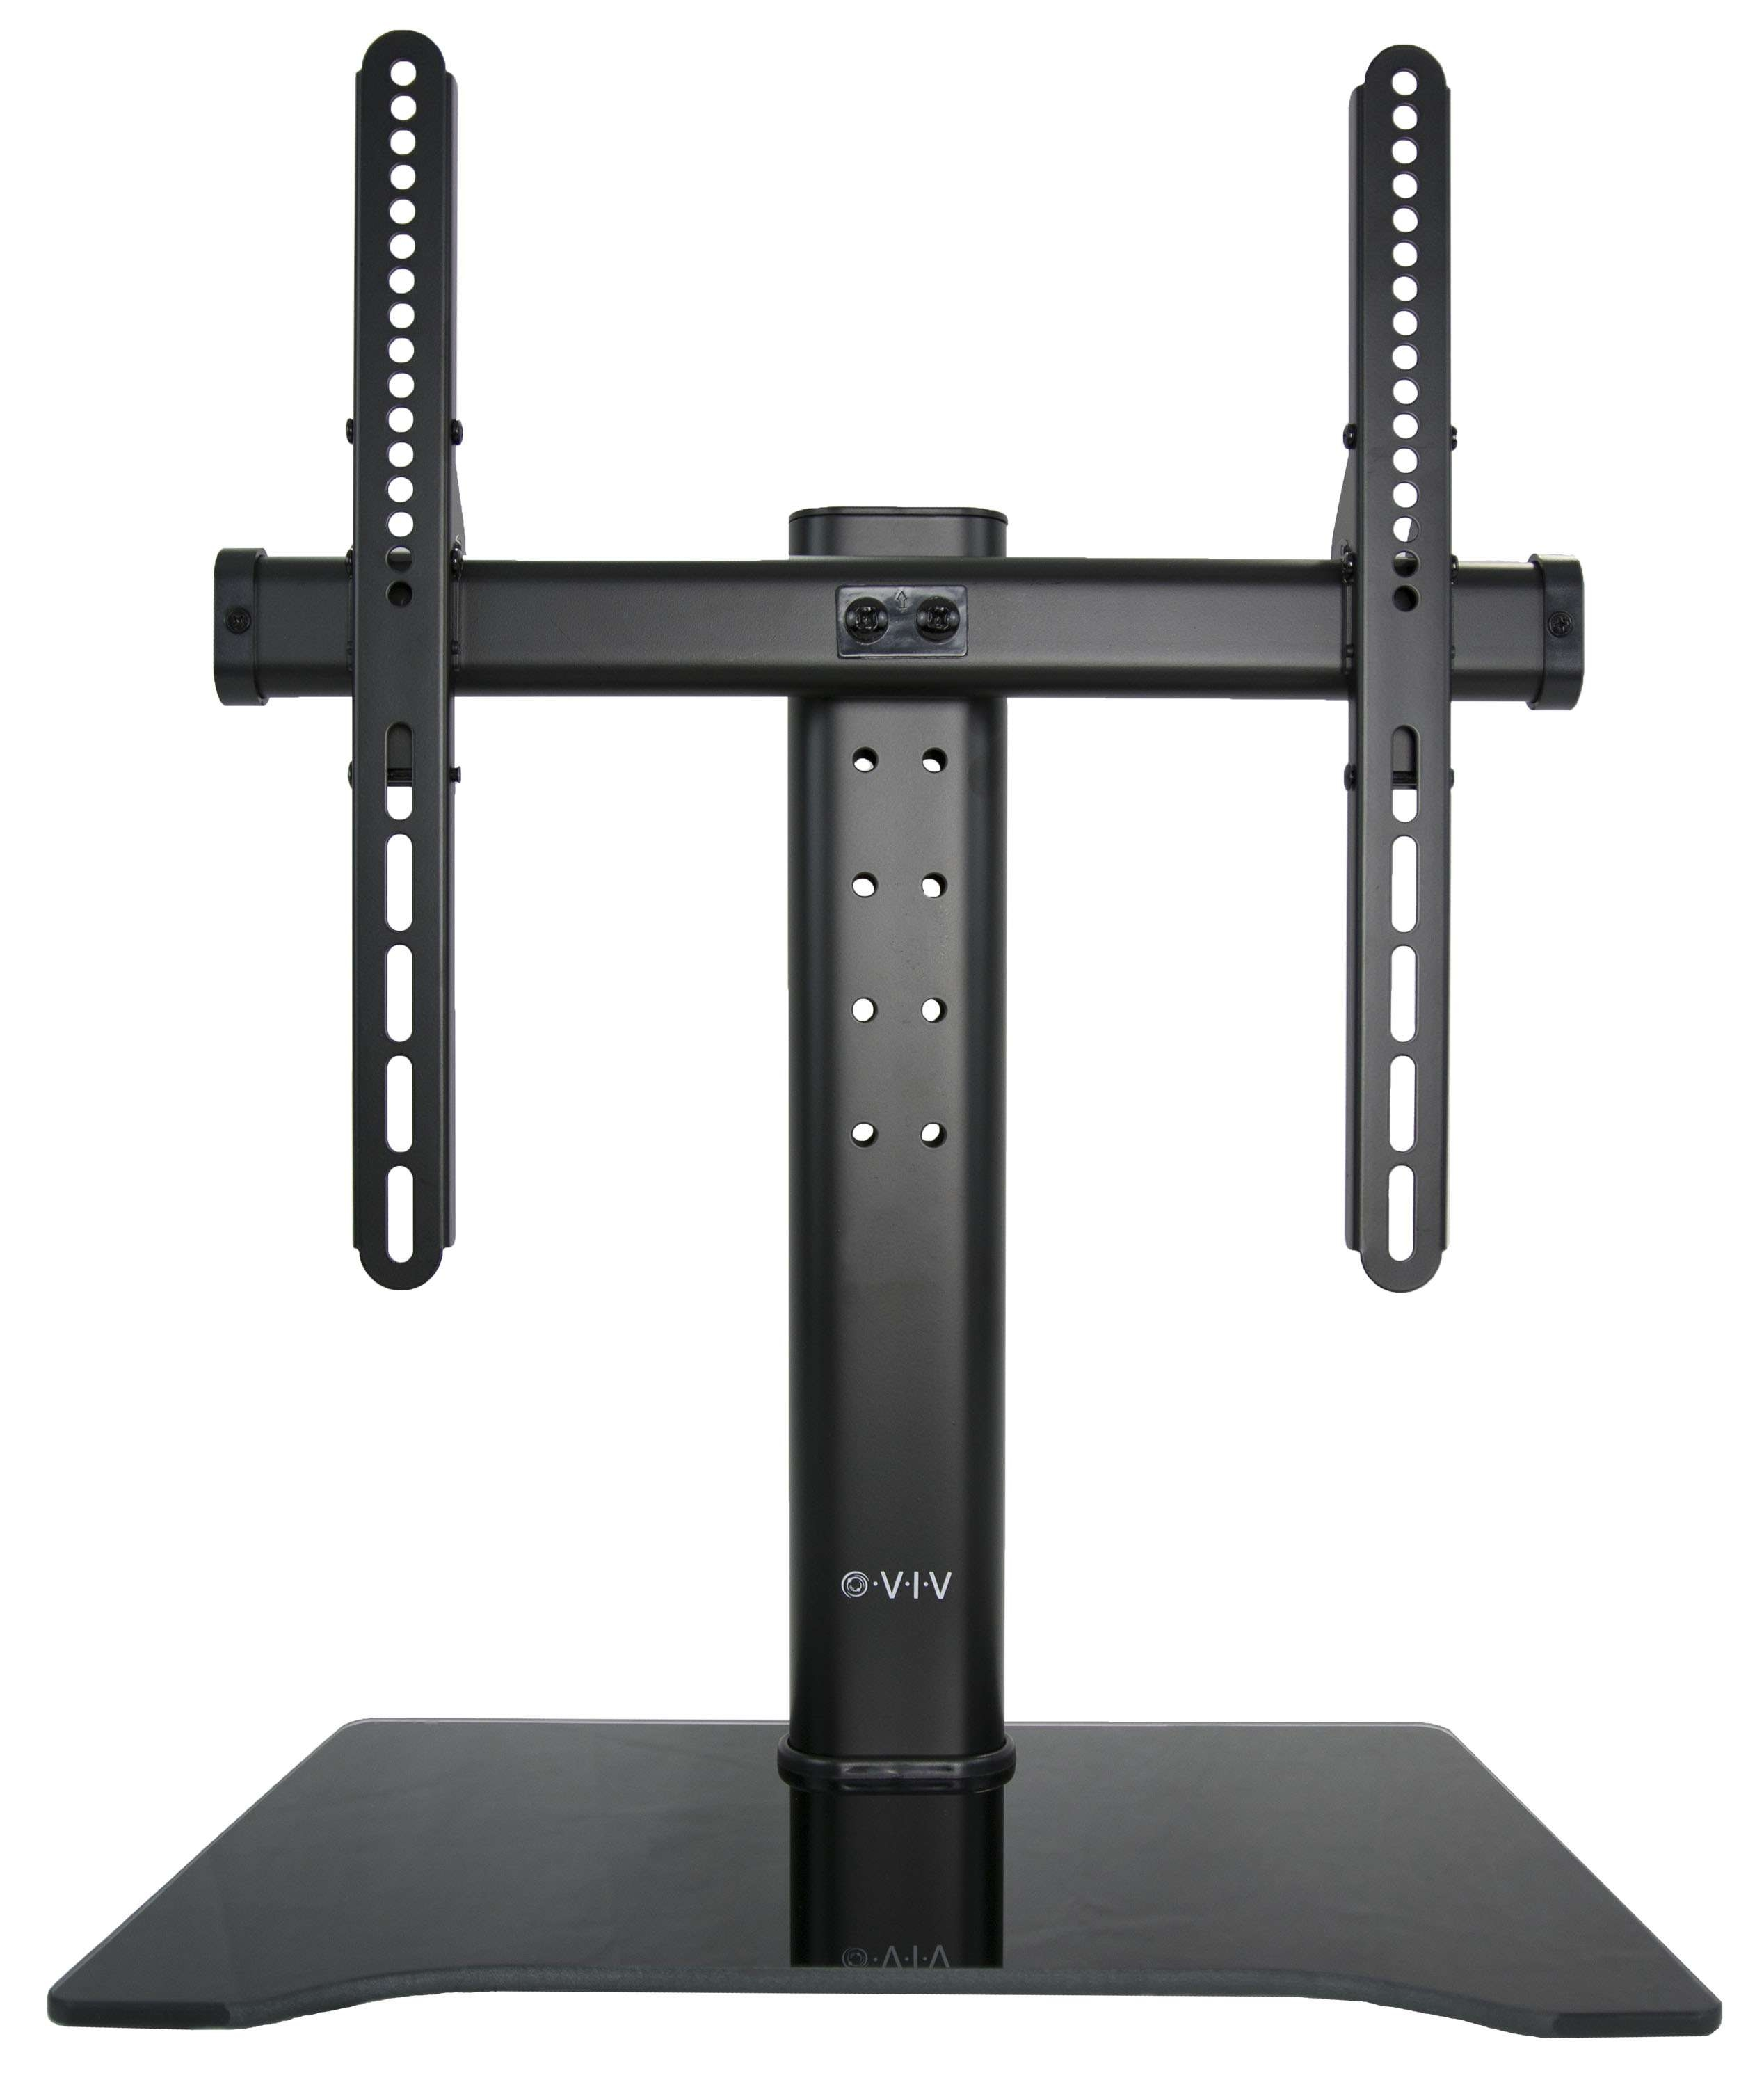 Pedestal Tv Bases Throughout Universal Flat Screen Tv Stands (View 6 of 20)